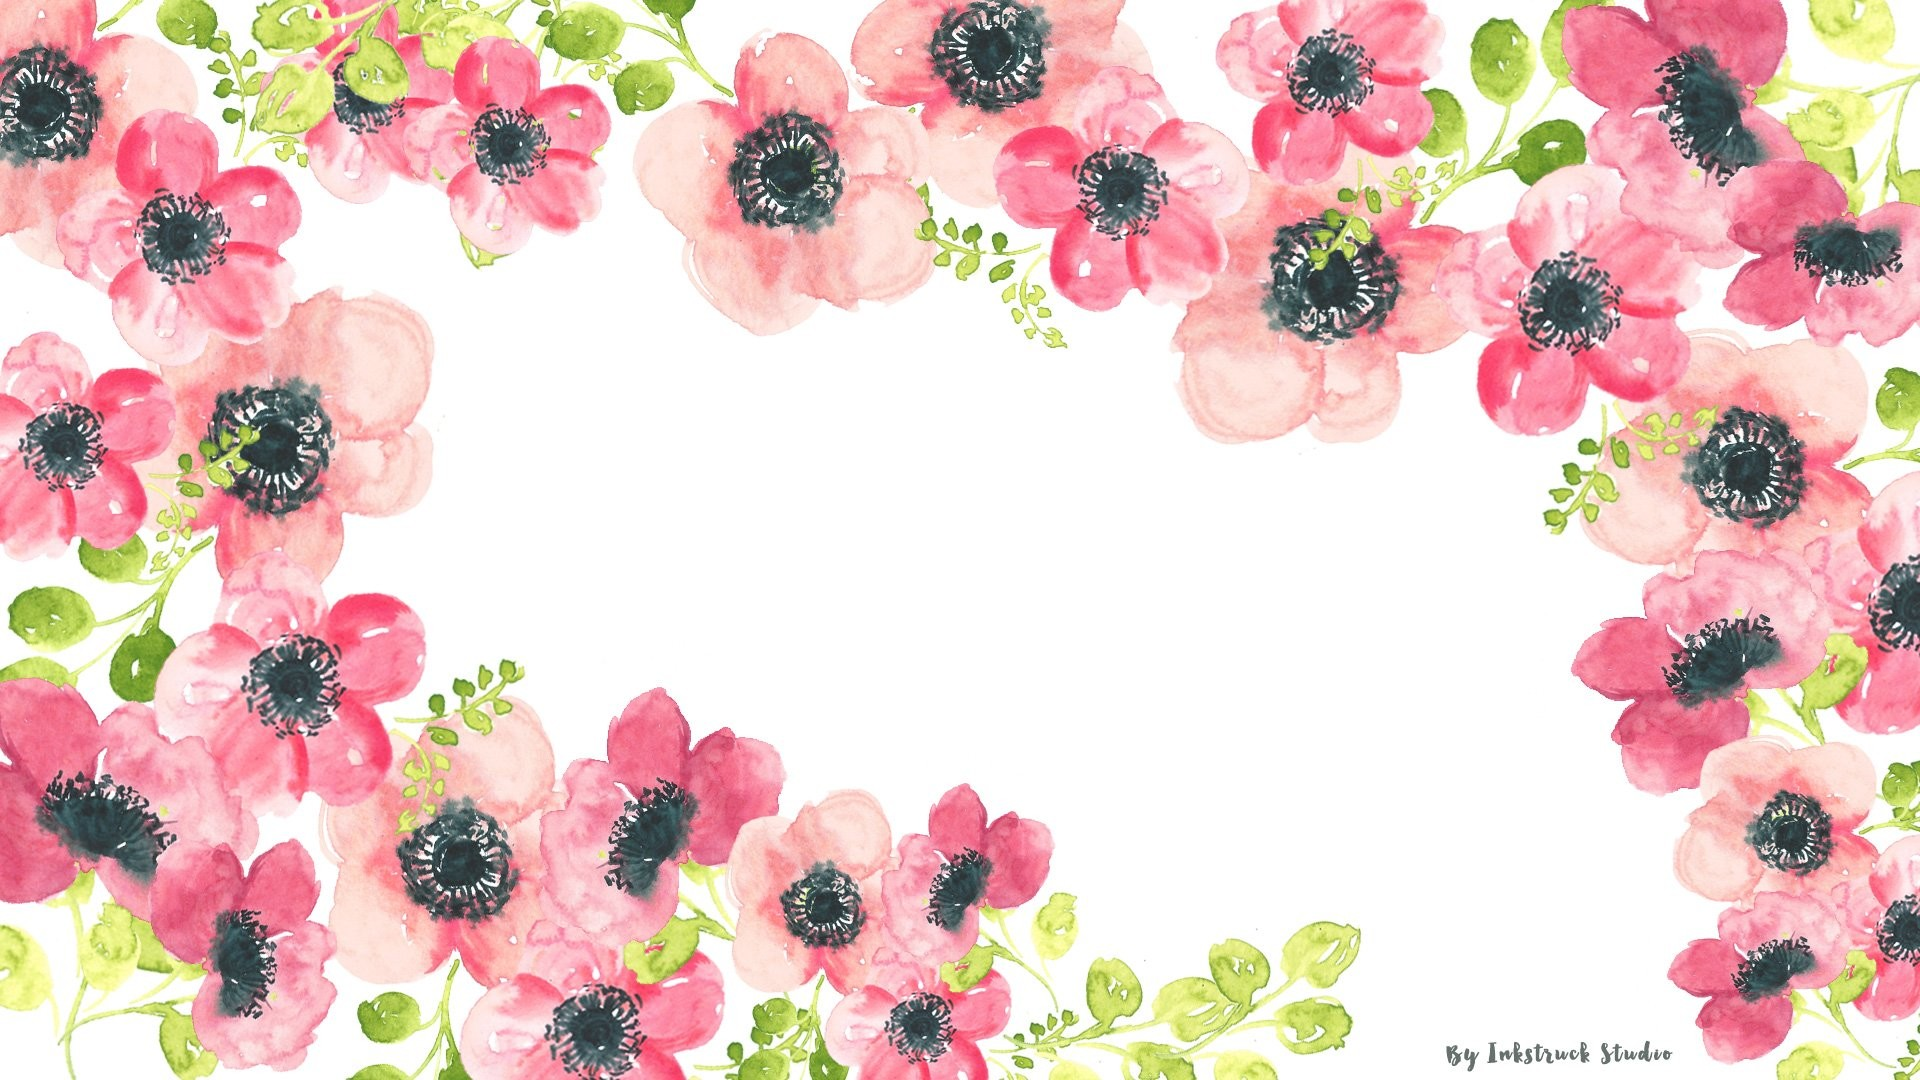 1920x1080 watercolor-floral-desktop-wallpaper.jpg 1,920×1,080 pixels | Wallpapers |  Pinterest | Wallpaper, Laptop backgrounds and Wallpaper desktop